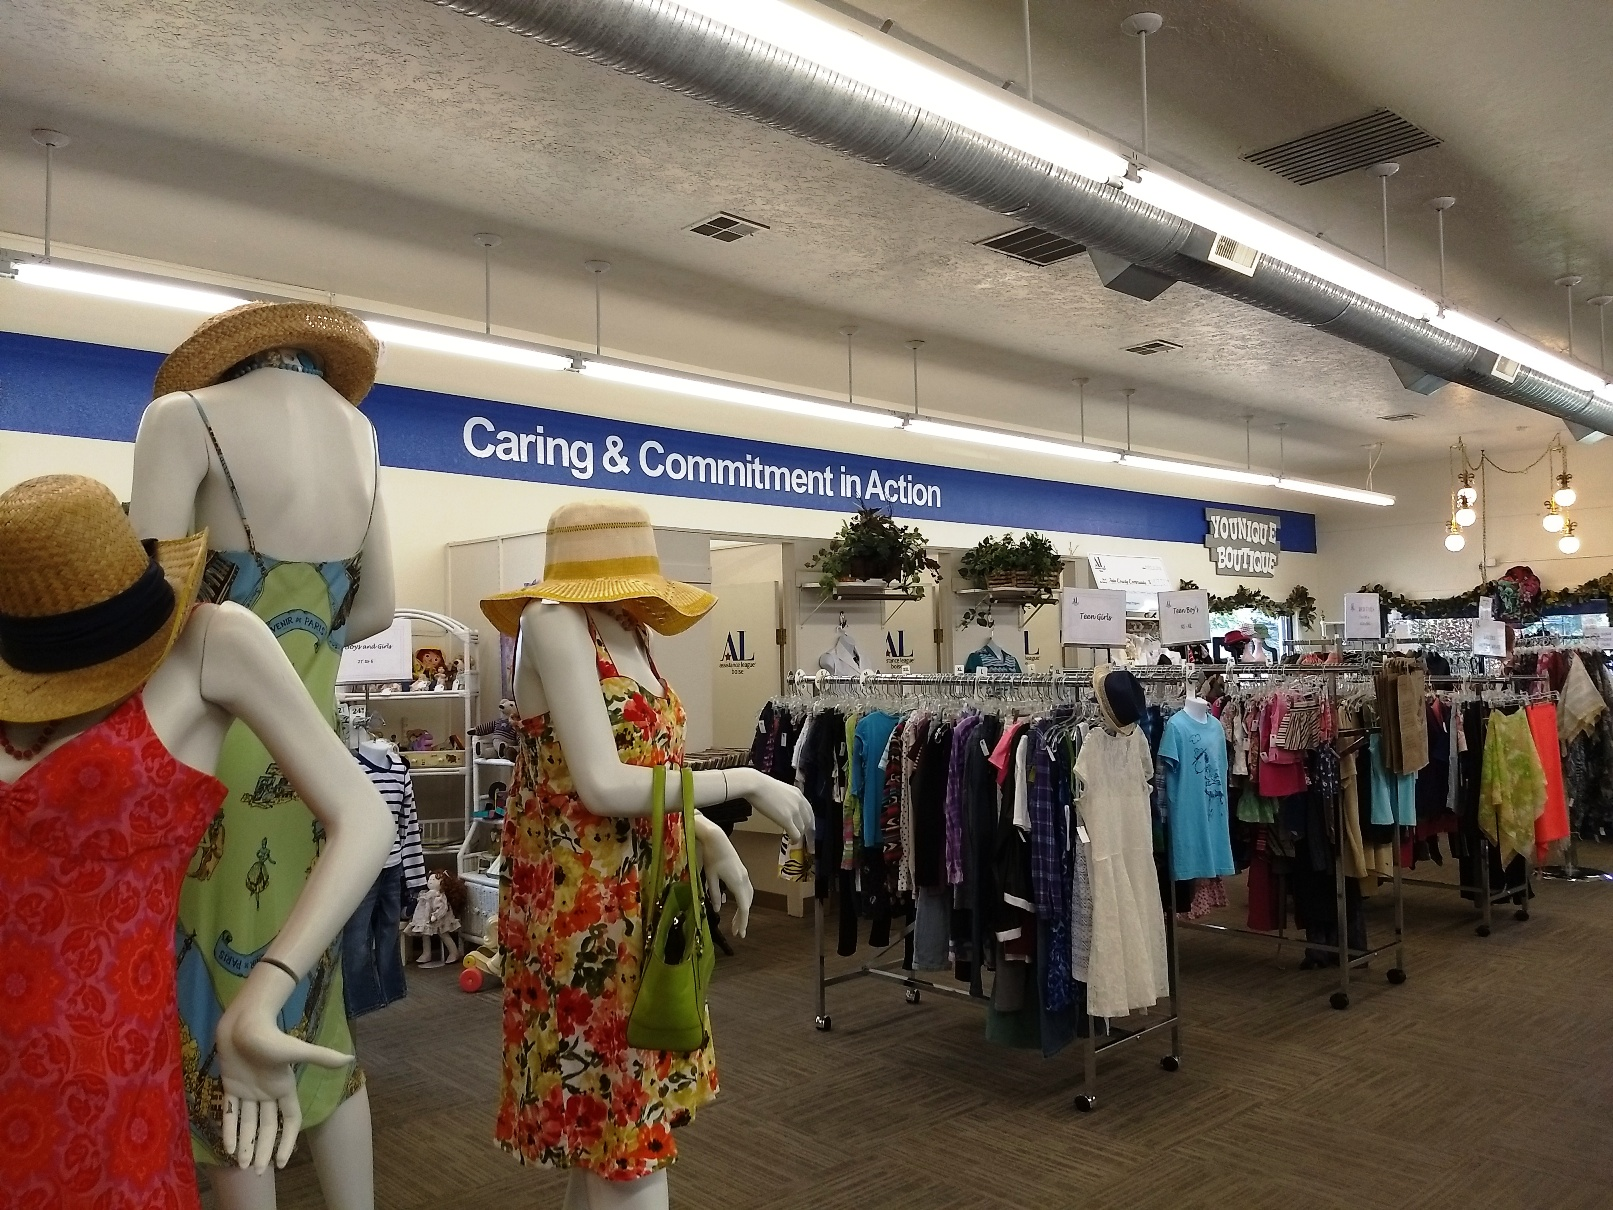 Clothing displays and racks in Thrift Shop